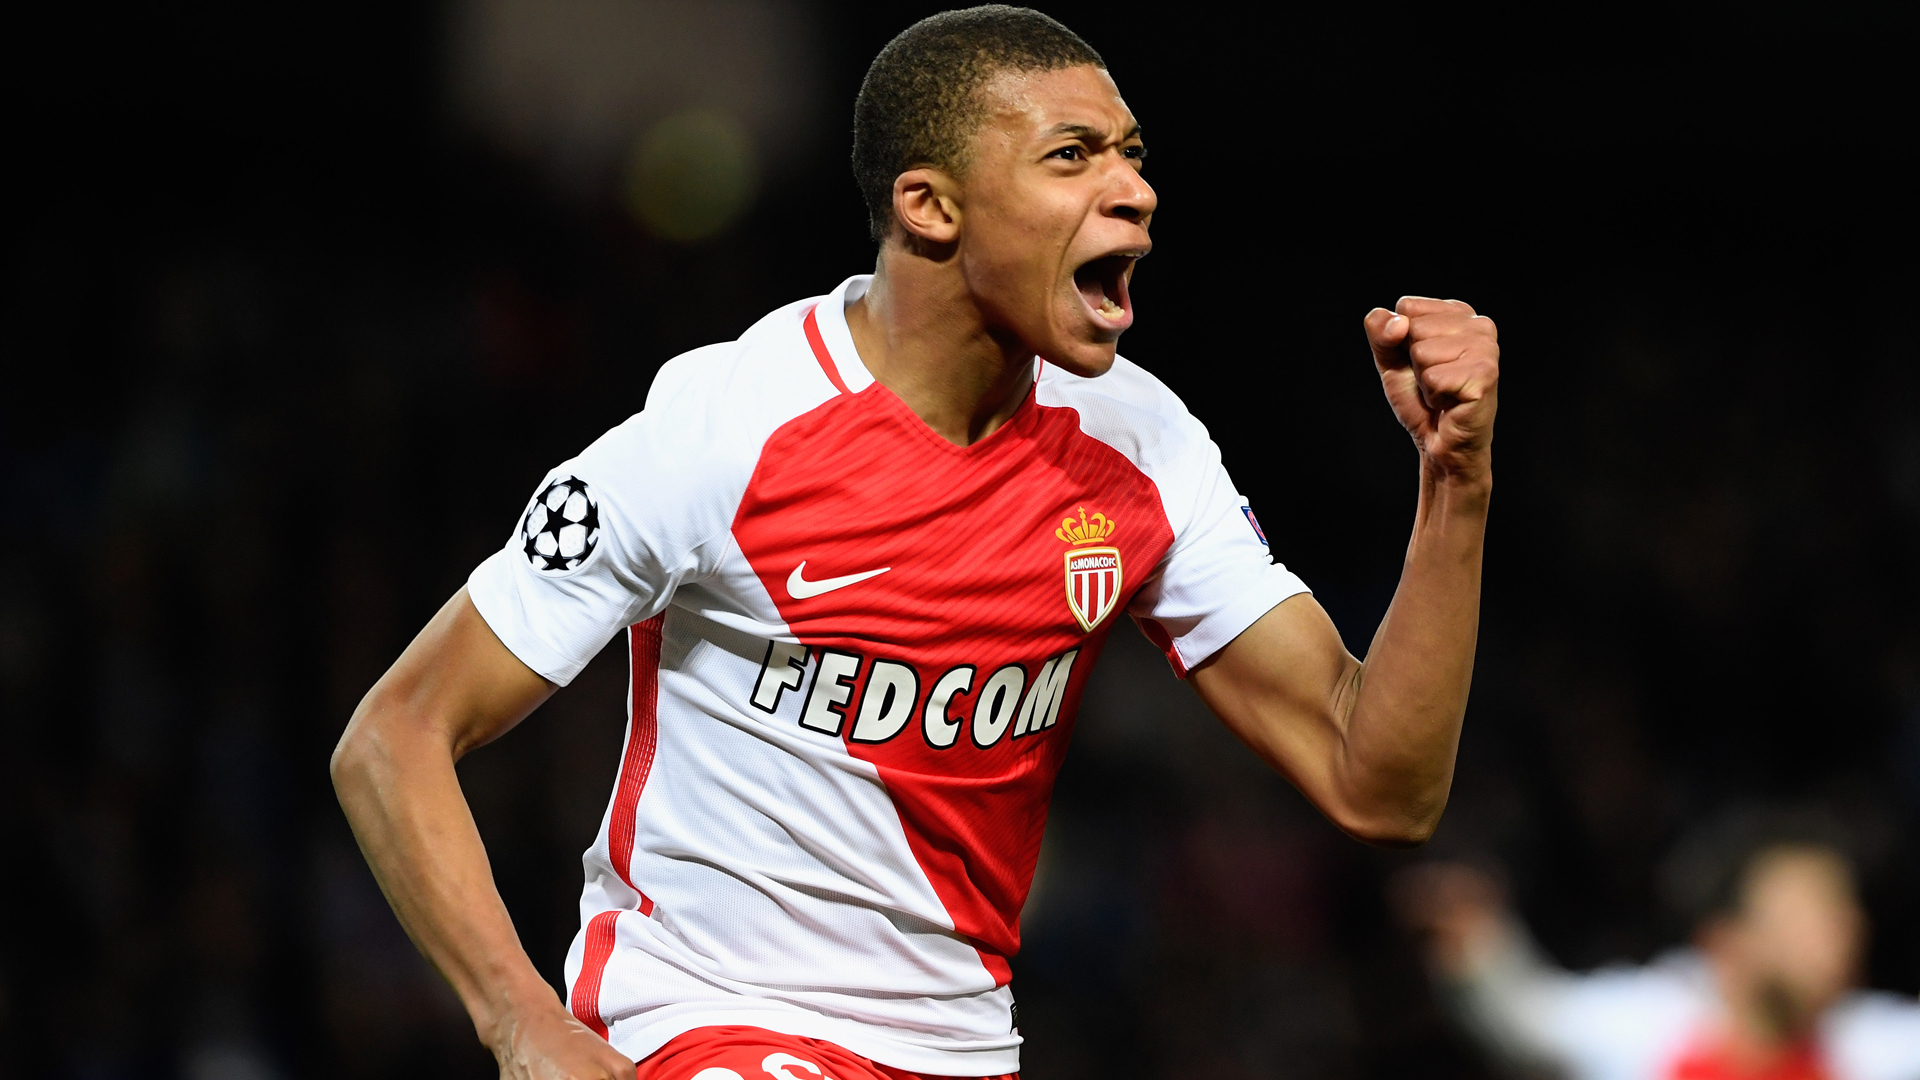 Prince Albert: Monaco best place for Kylian Mbappe